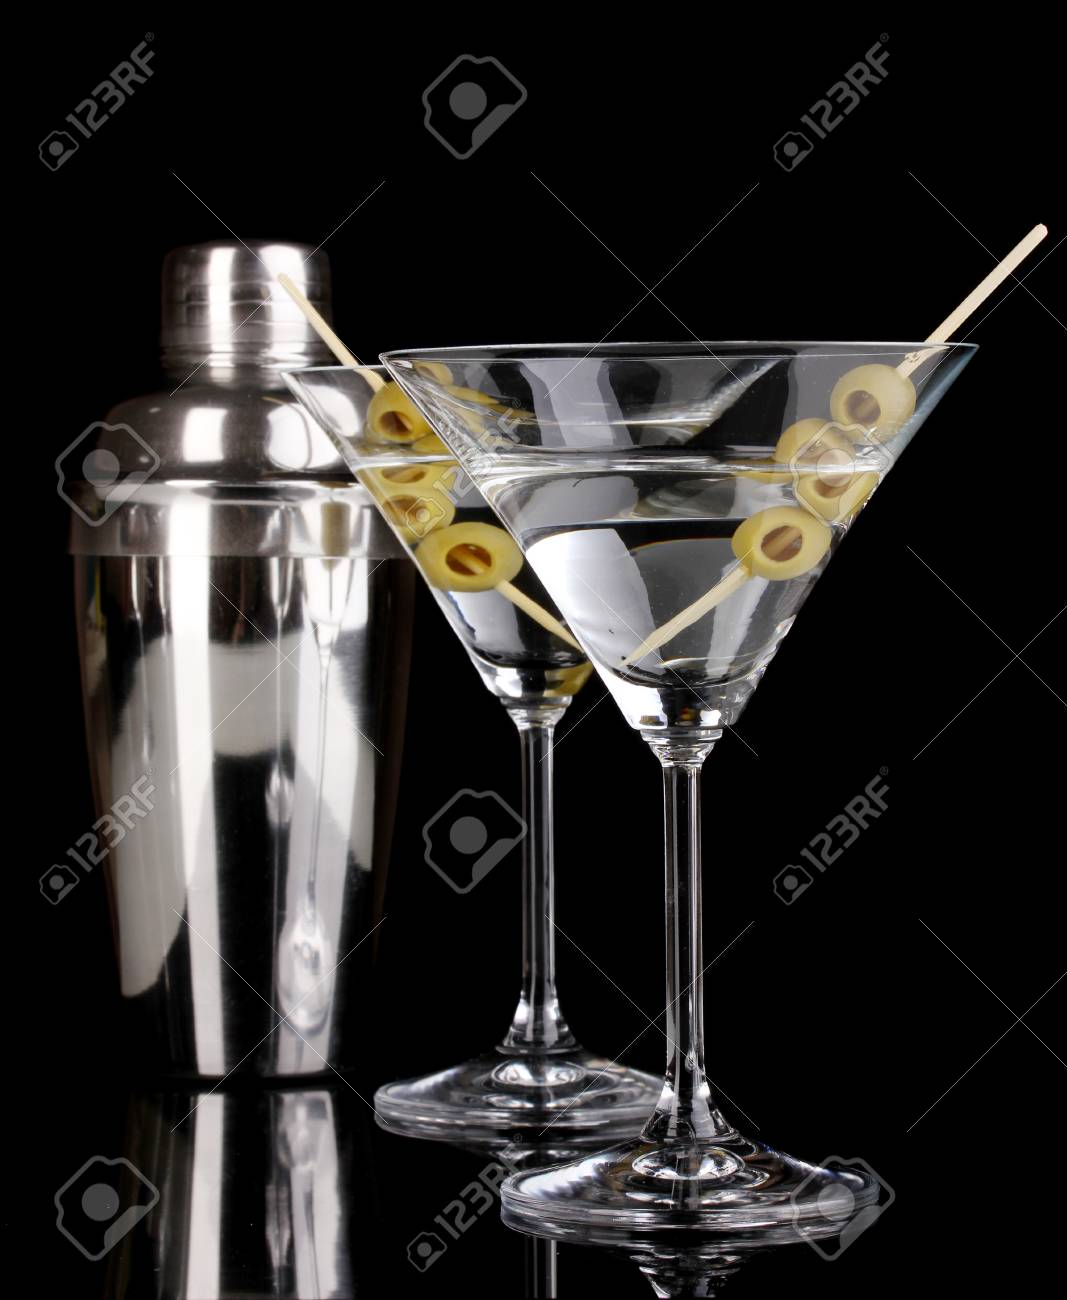 Martini glass with olives and shaker isolated on black Stock Photo - 16342367